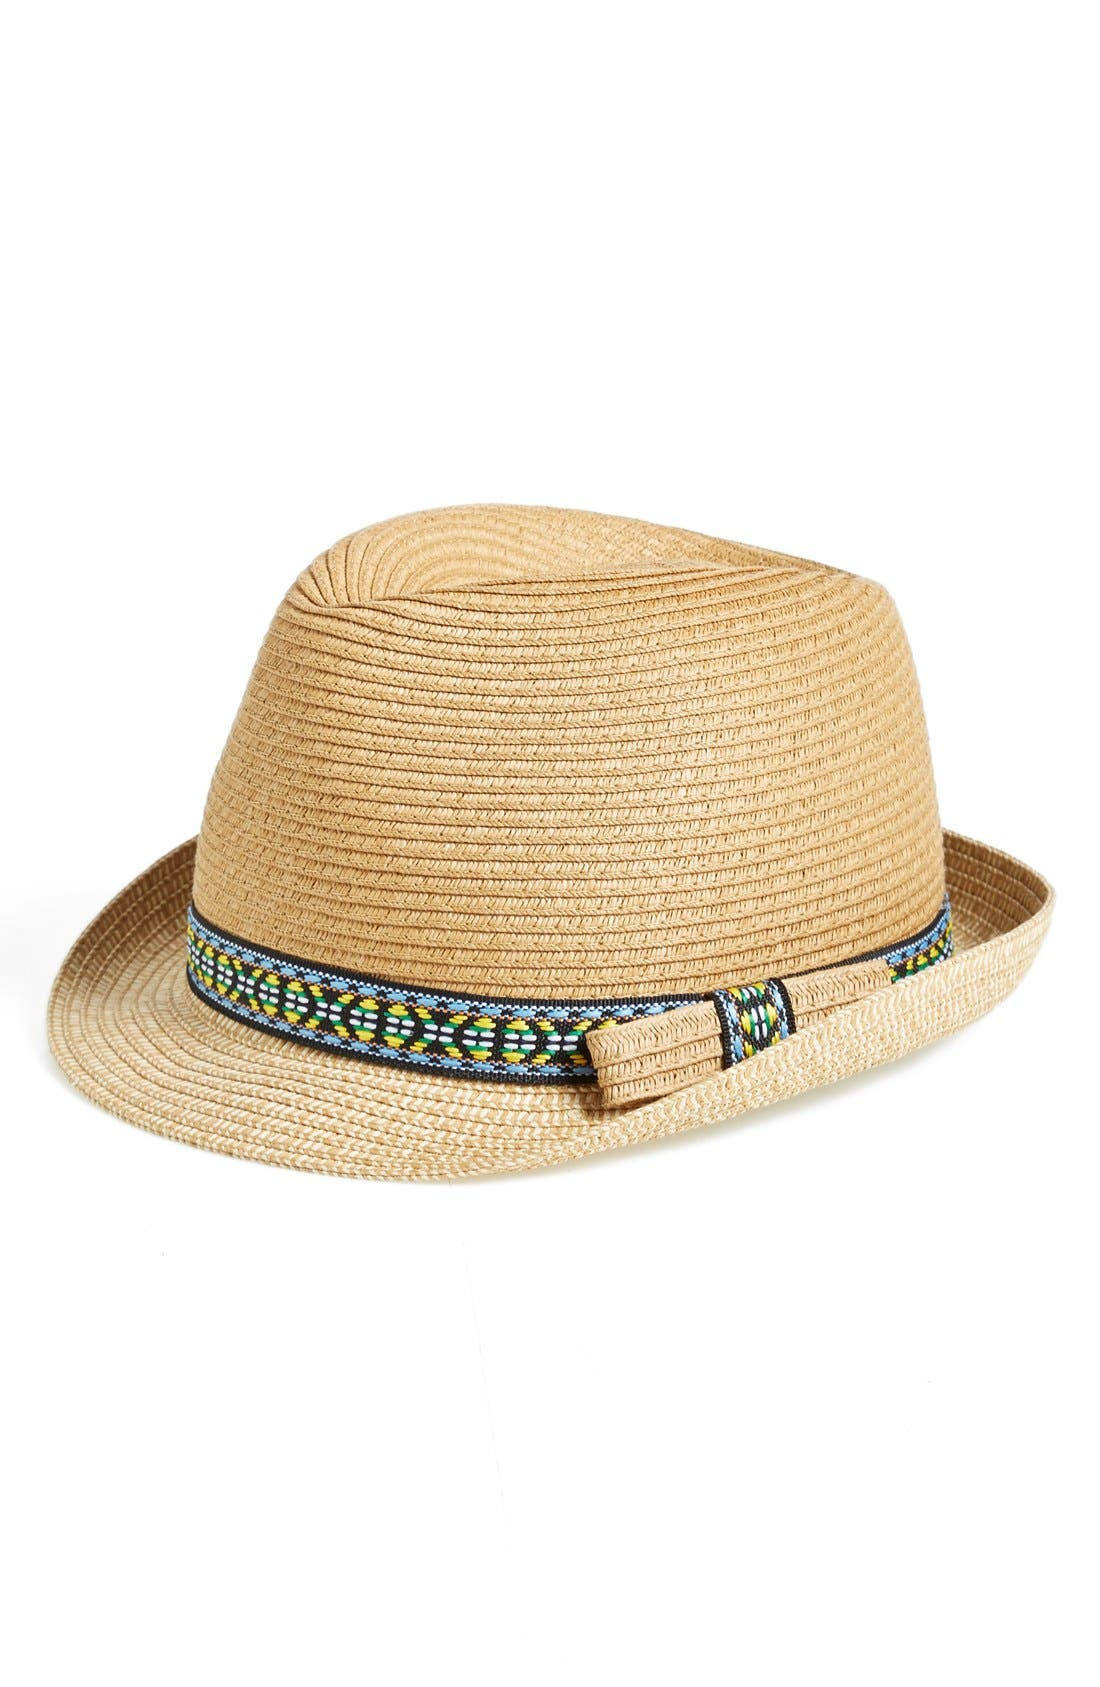 Fedora with Embroidered Band,                             Main thumbnail 1, color,                             235